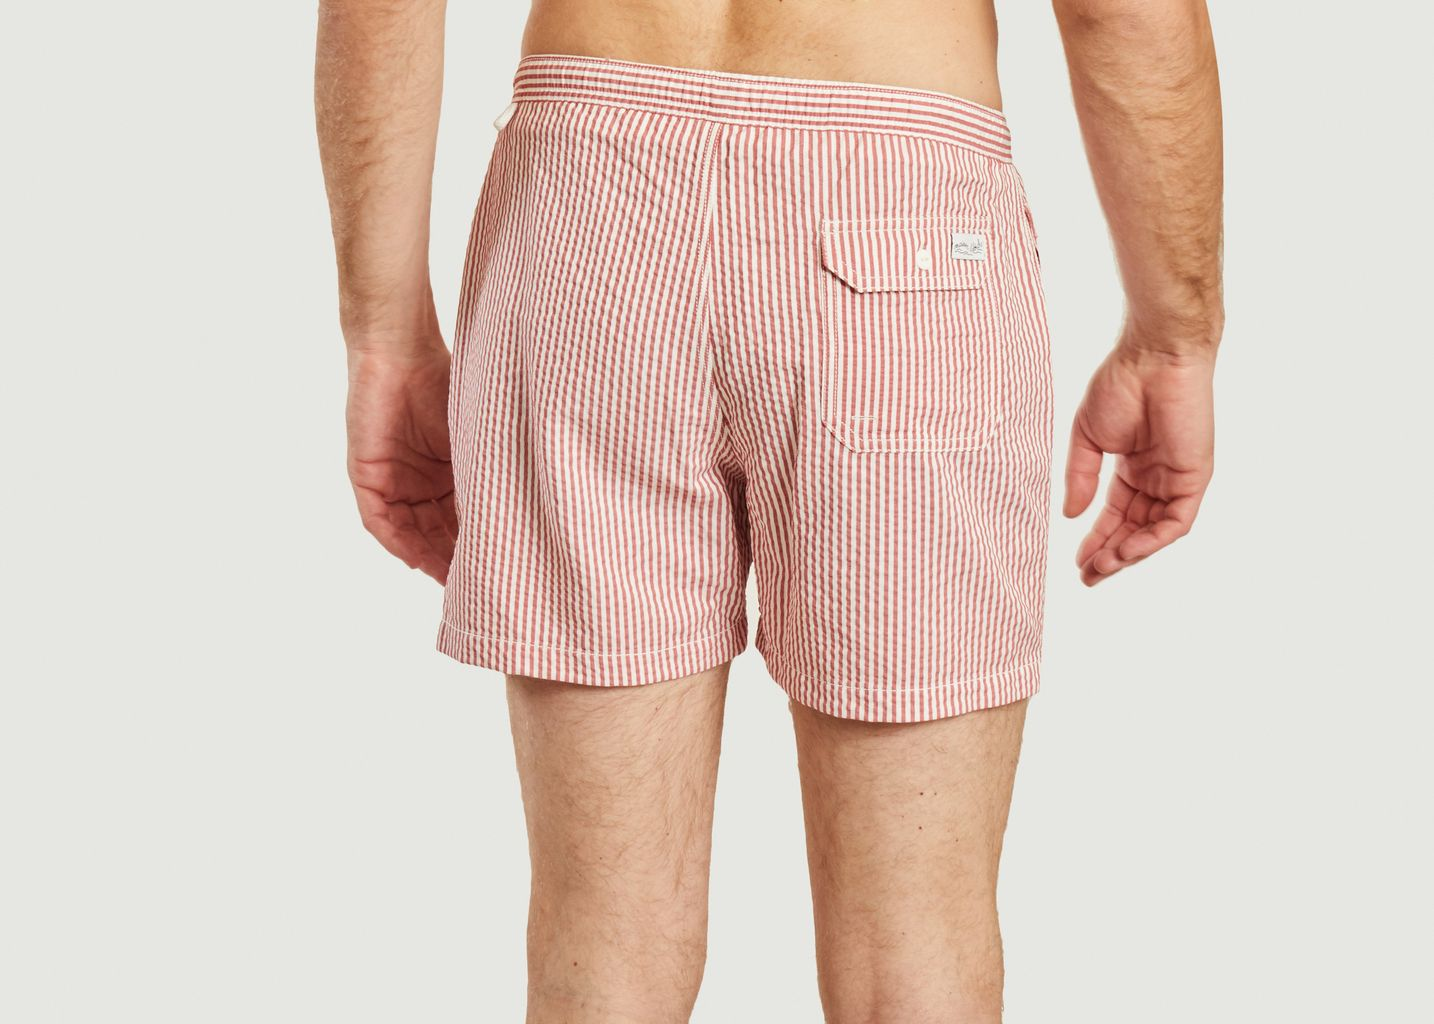 Short de bain The Dude - Maison Labiche